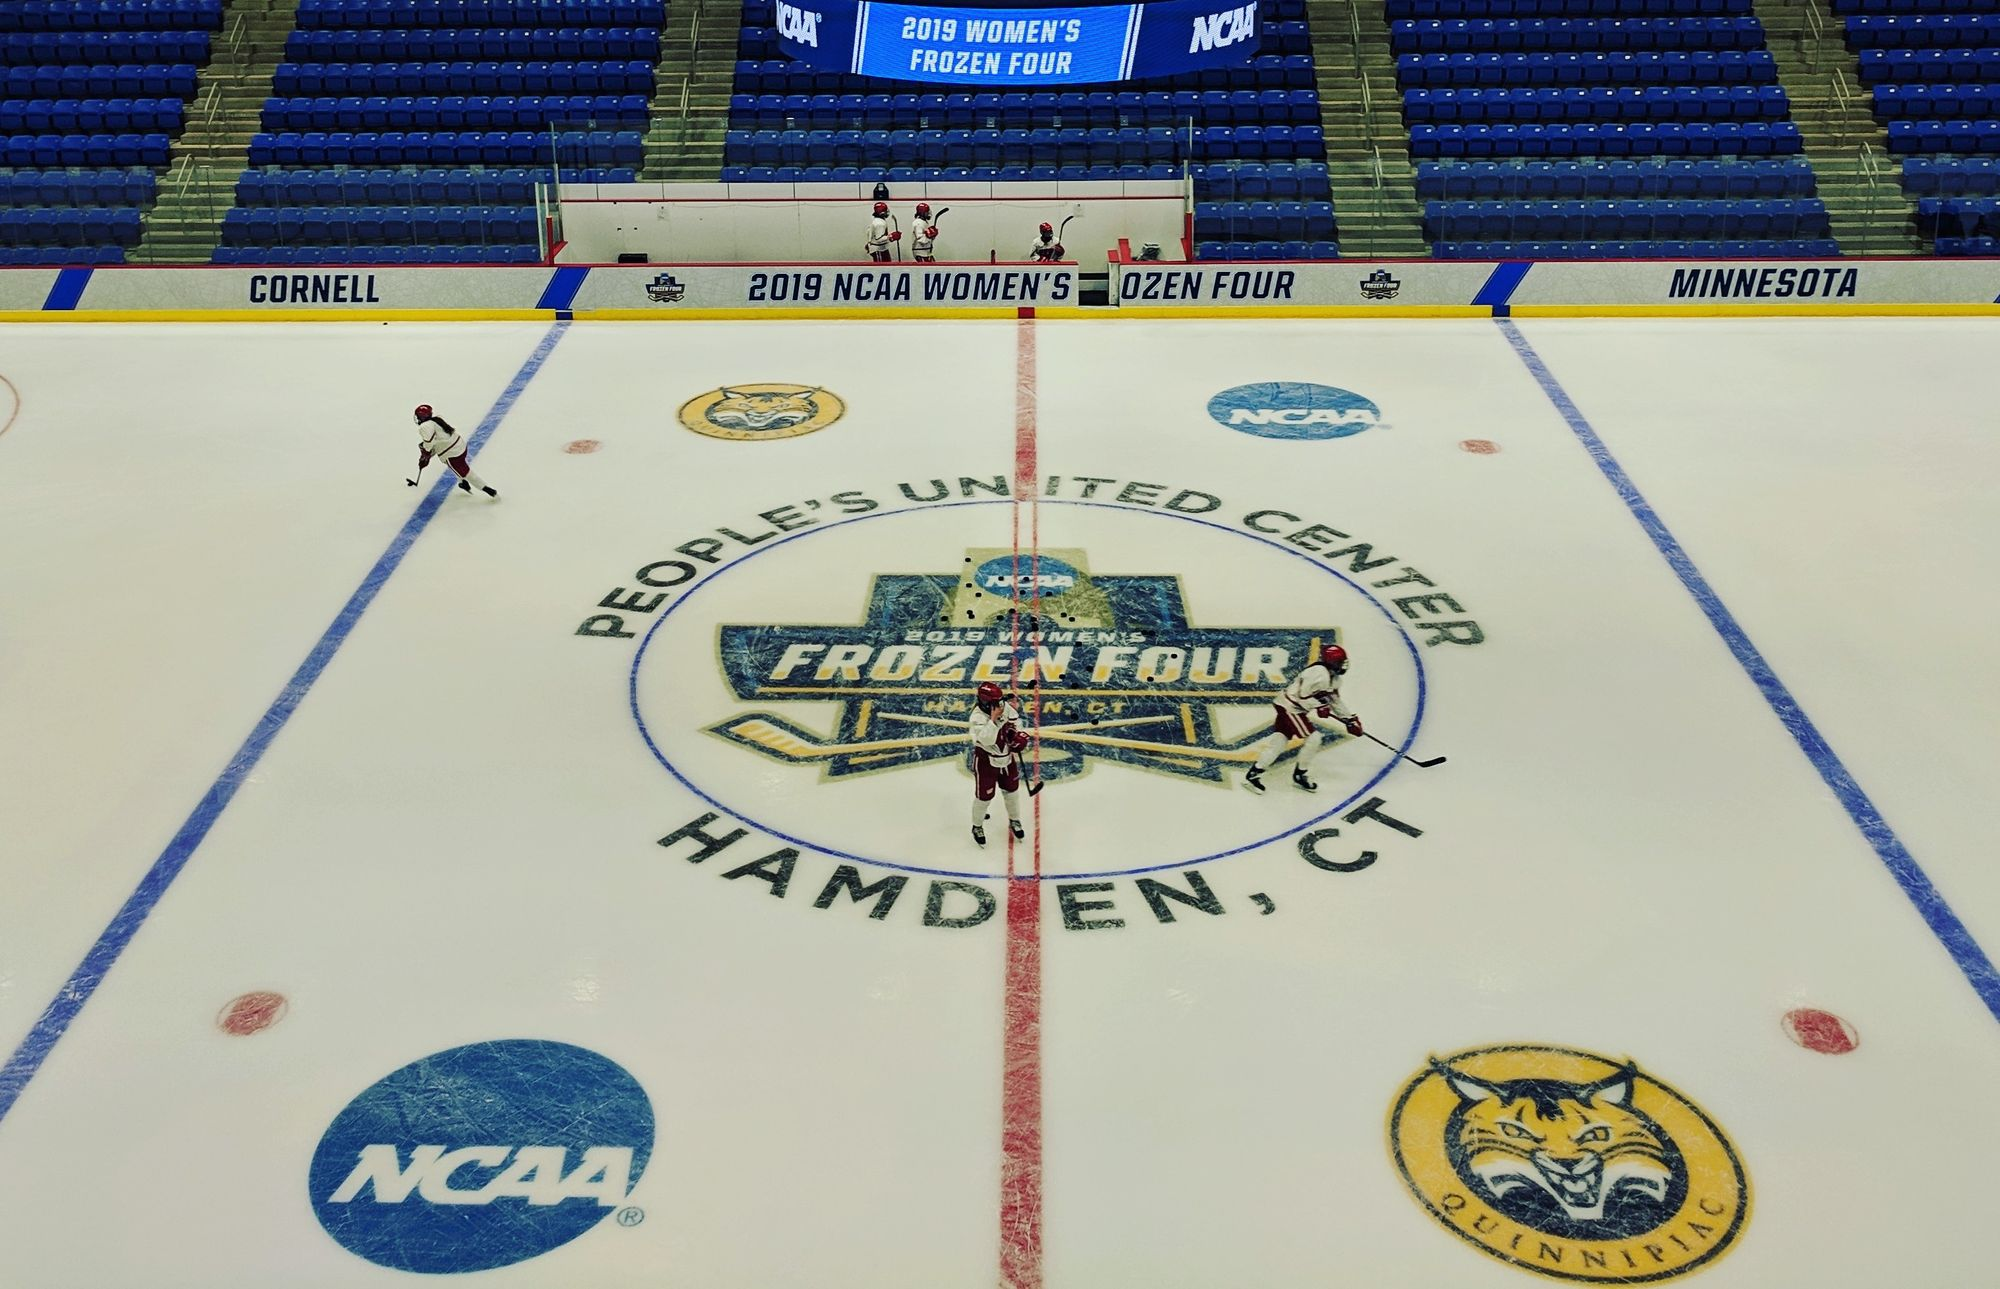 NCAA Women's Hockey: What to Watch, Week 27 - FROZEN FOUR Edition